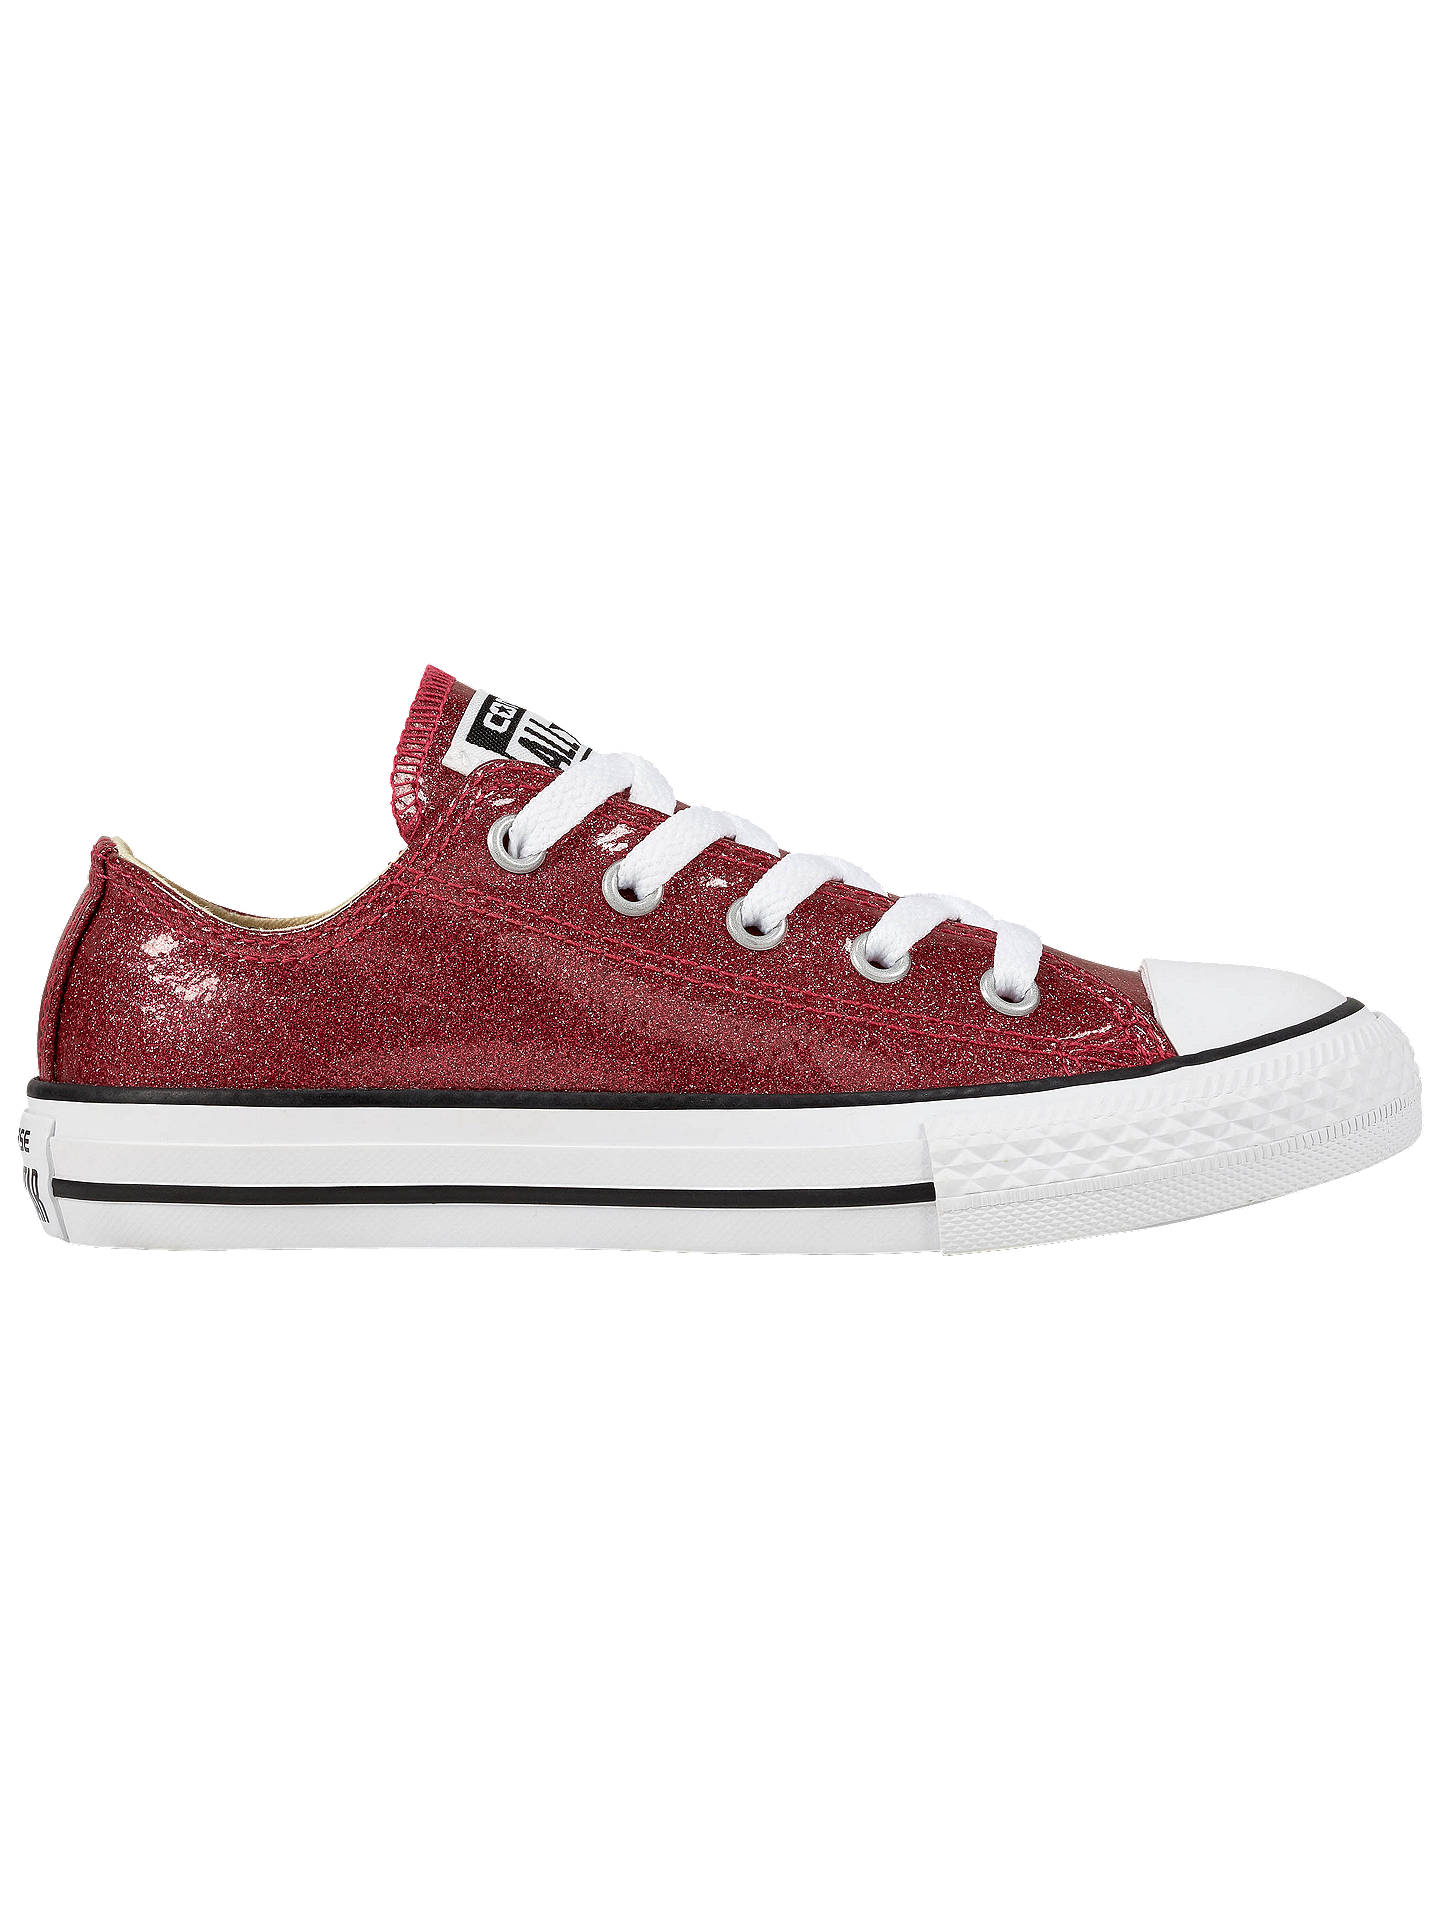 32b7c6420d23 Buy Converse Chuck Taylor All Star Ox Trainers